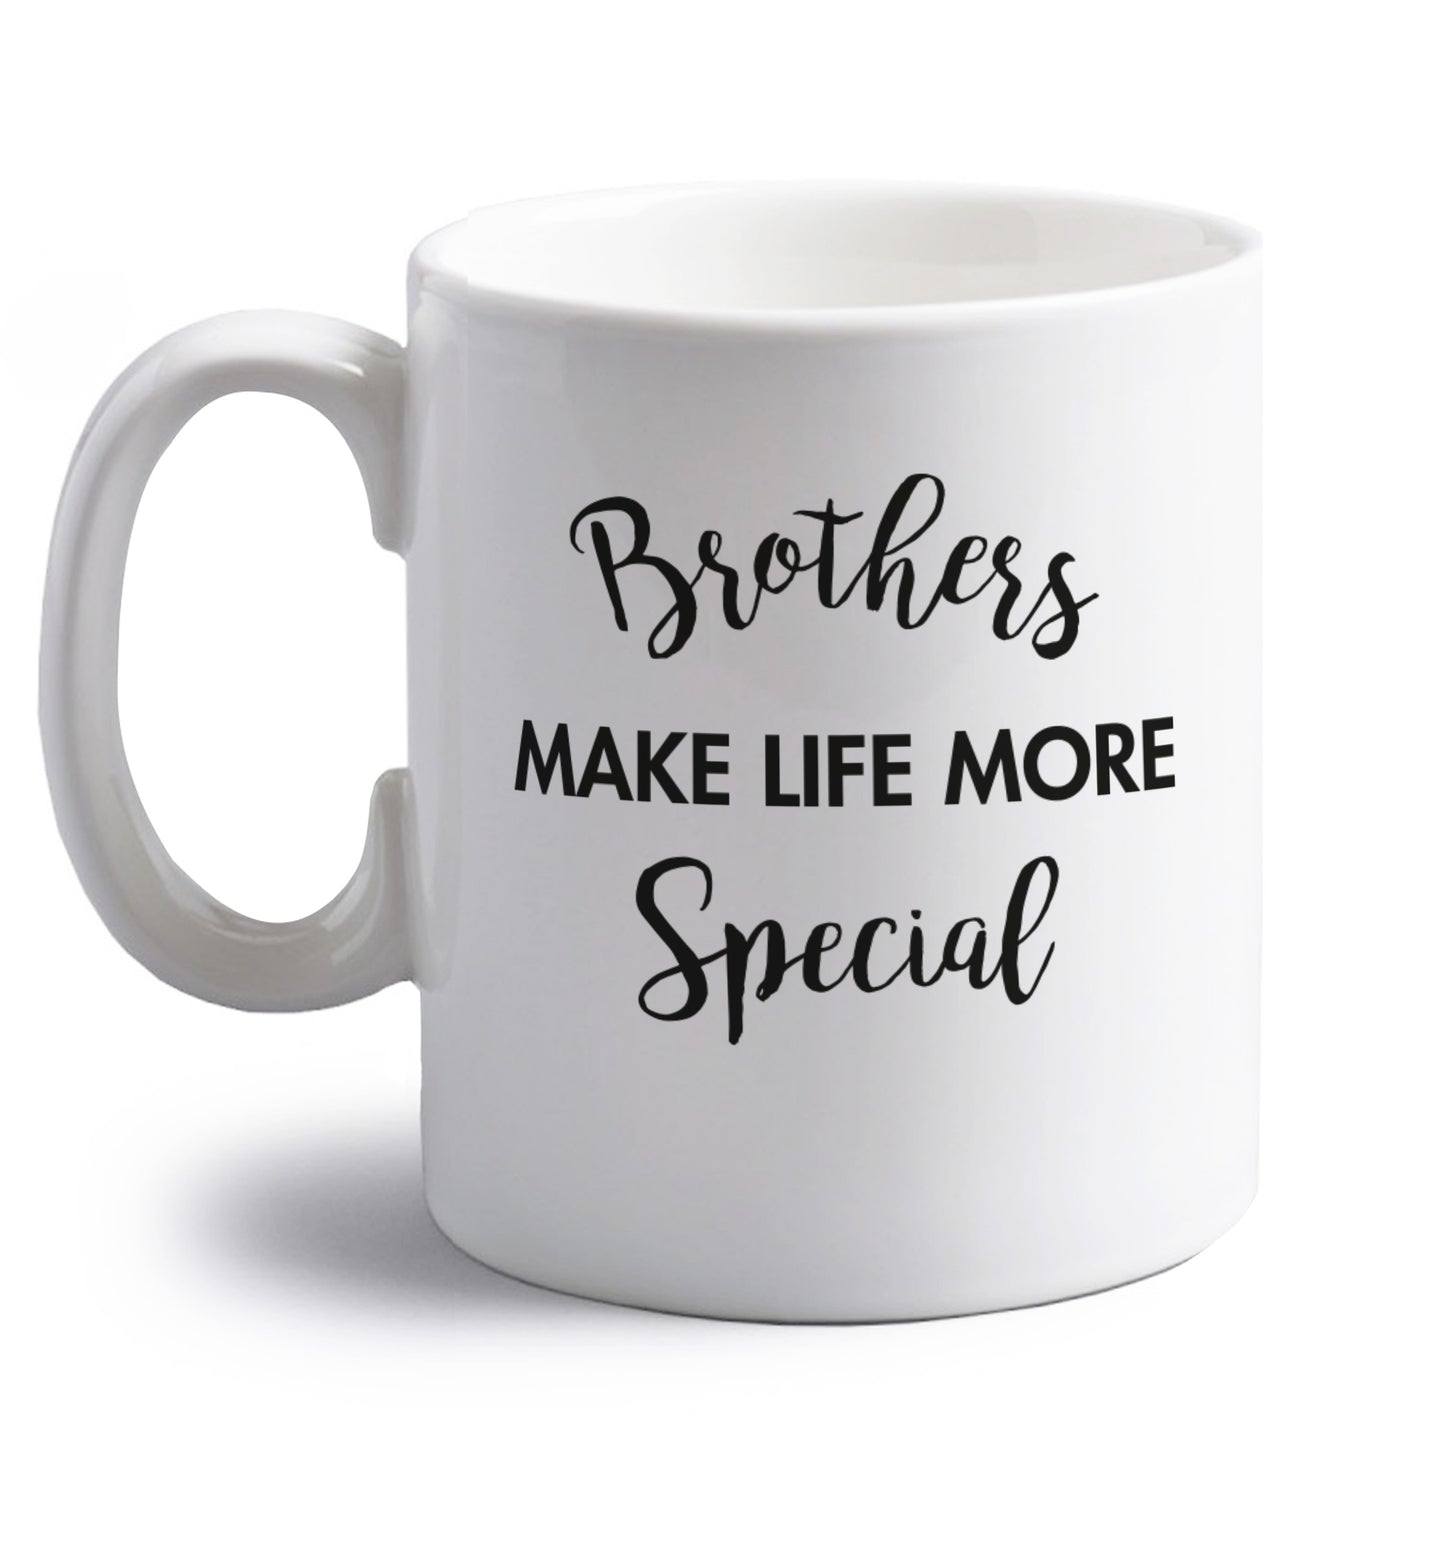 Brothers make life more special right handed white ceramic mug